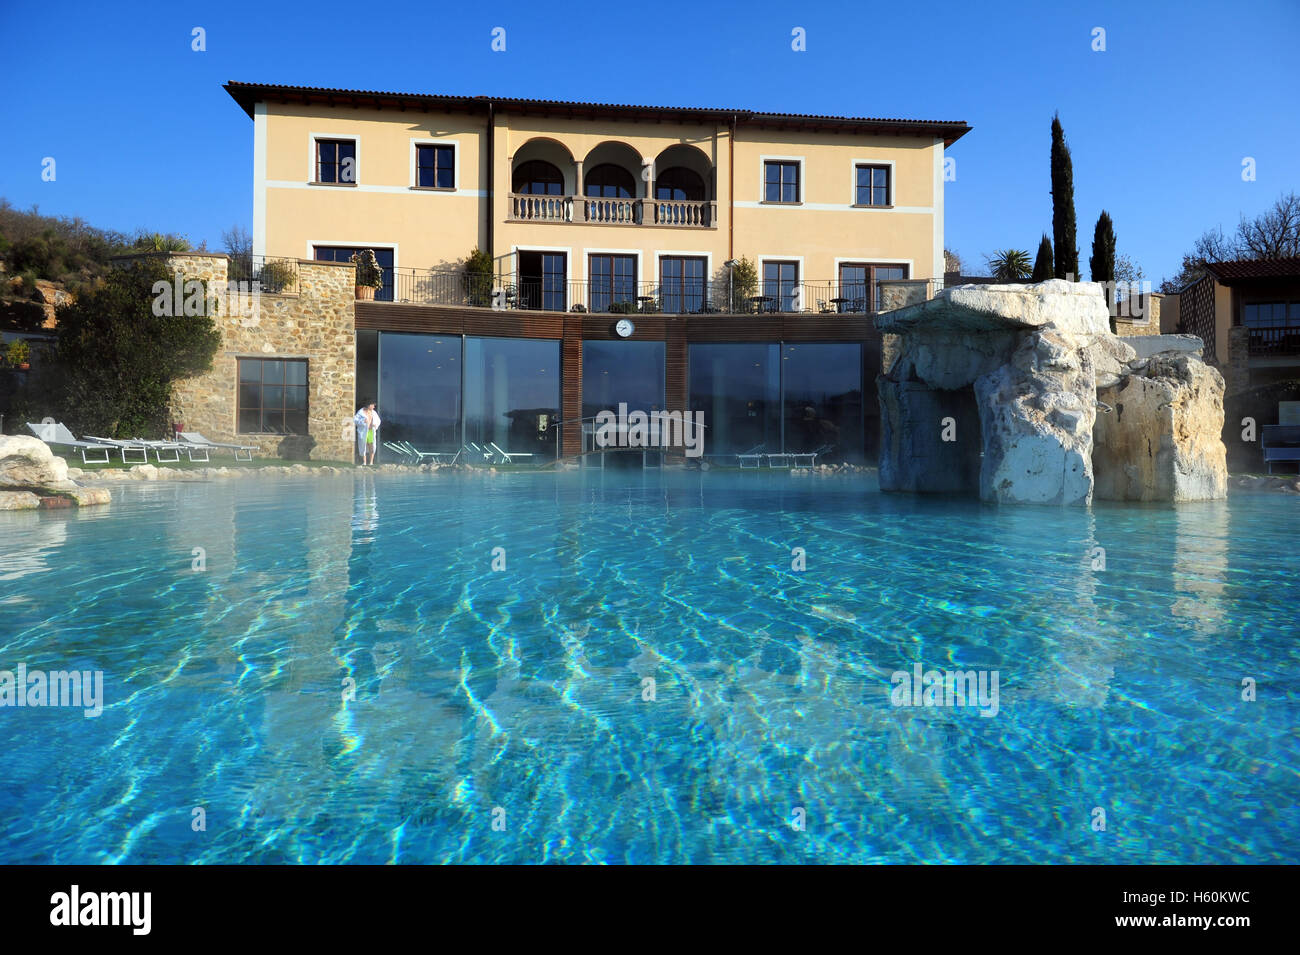 Hotel adler thermae spa wellness resort in bagno vignoni san